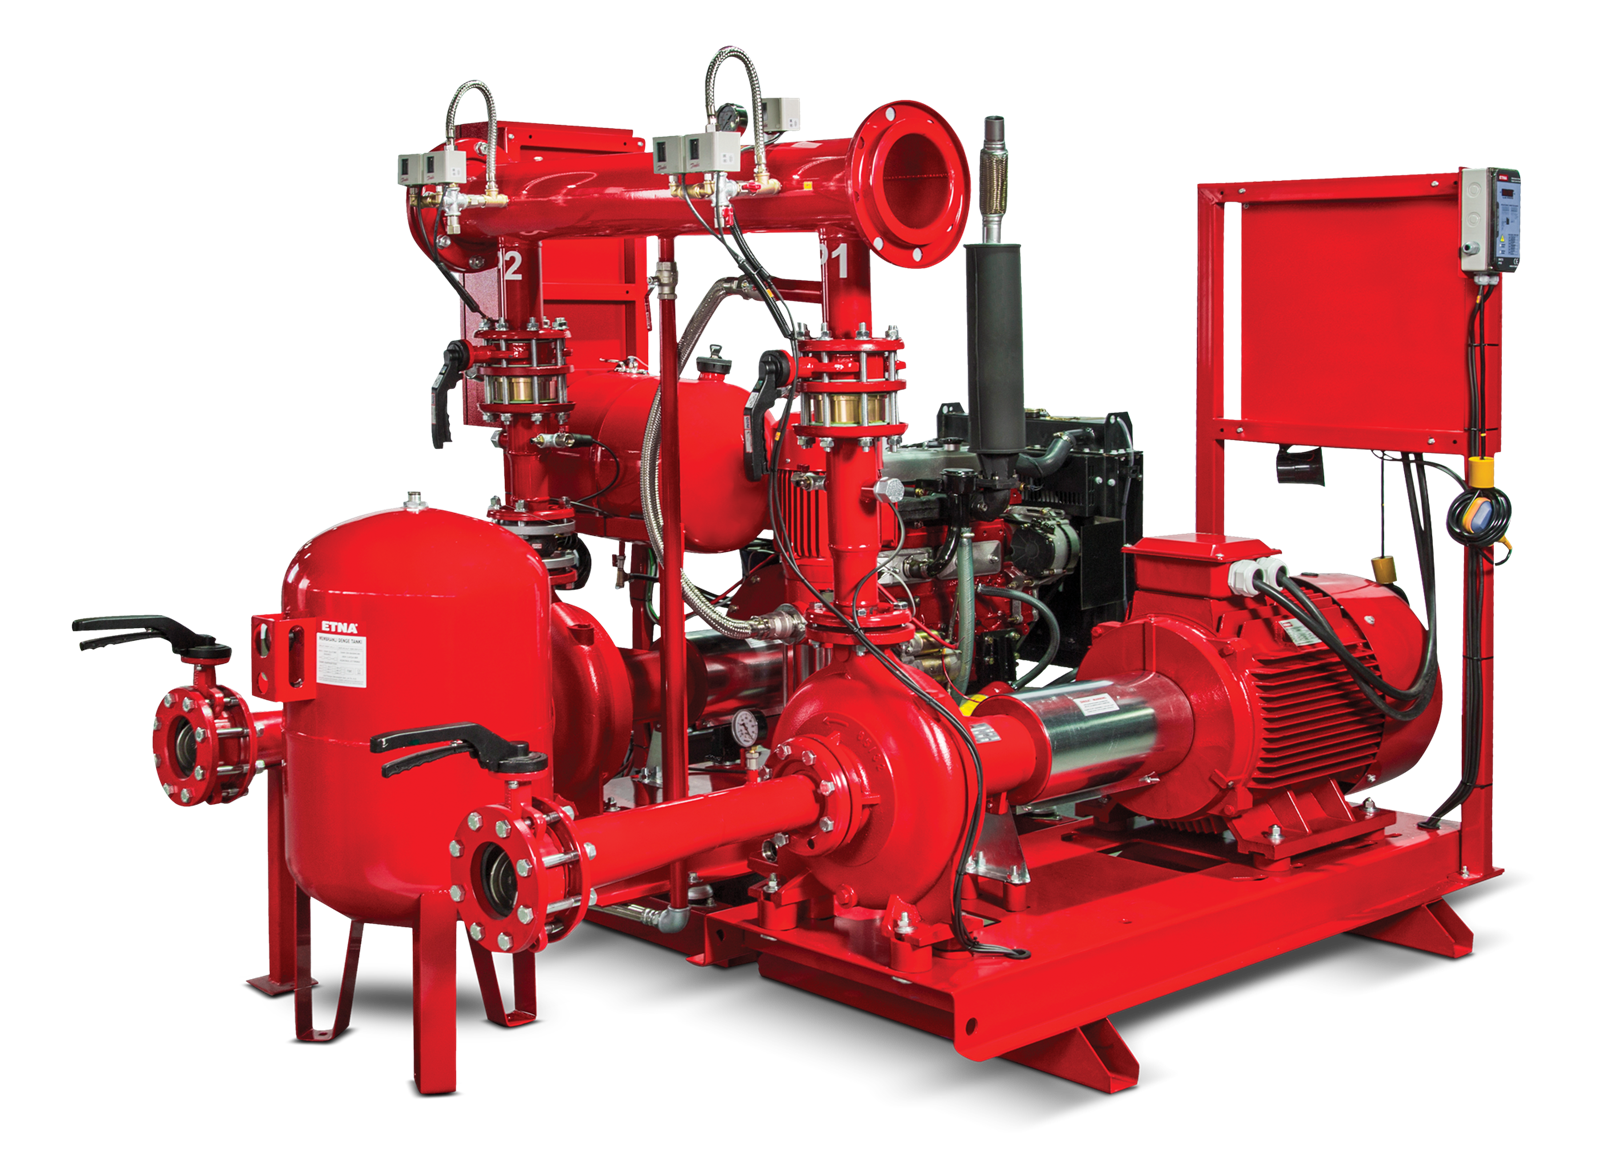 Hệ thống PCCC ETNA - Model Fire Pumps in Complying with EN 12845 Standard